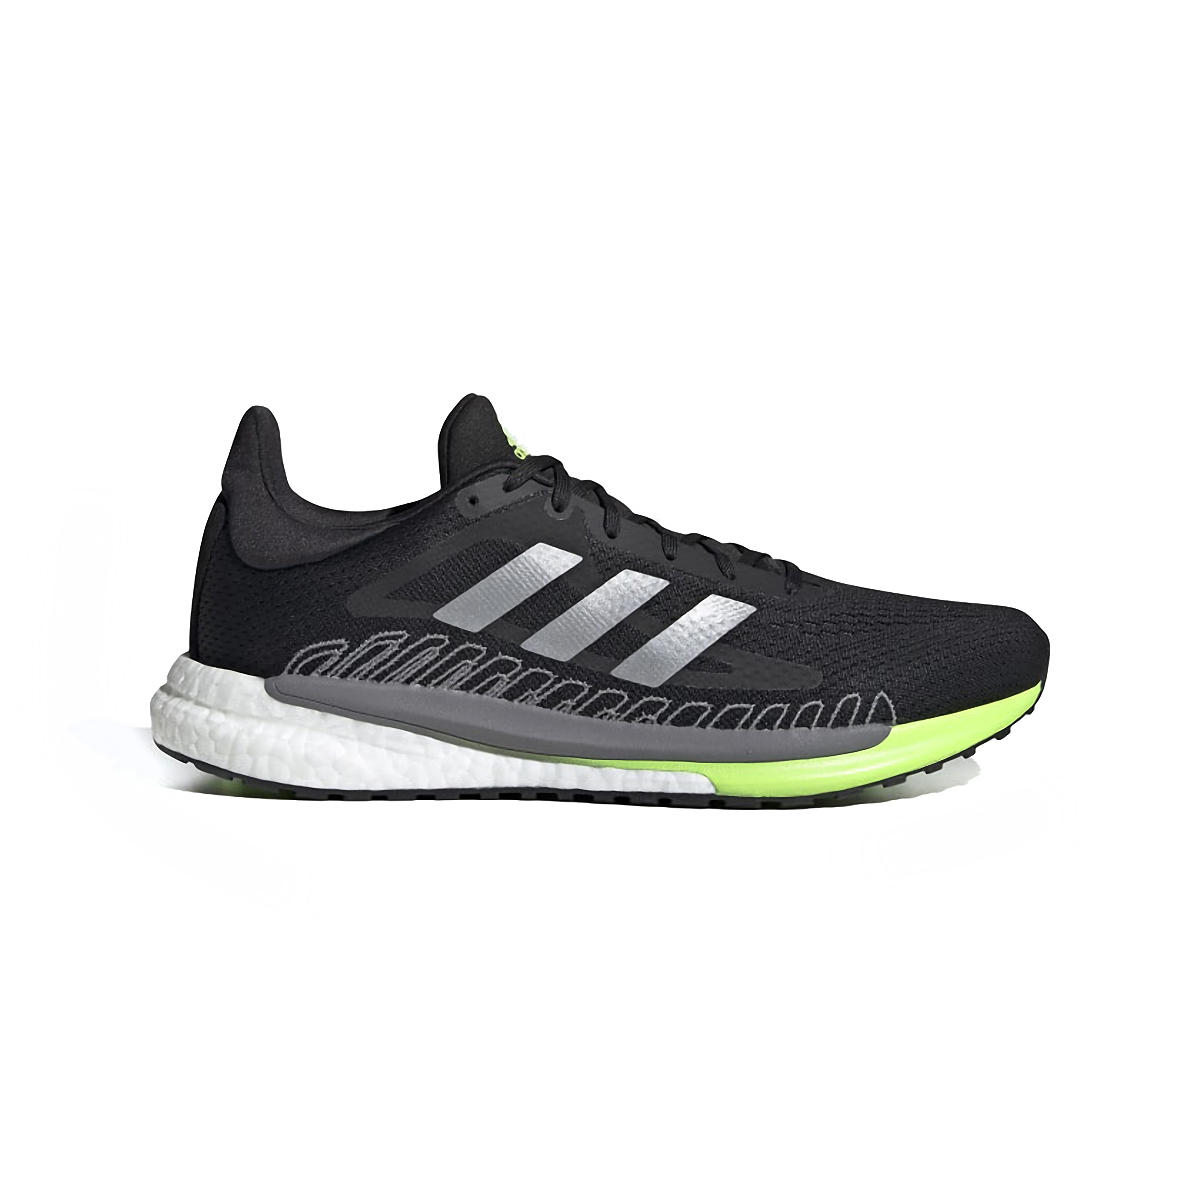 Men's Adidas Solarglide 3 Running Shoe - Color: Grey/Silver Metallic/Signal Green - Size: 6.5 - Width: Regular, Grey/Silver Metallic/Signal Green, large, image 1